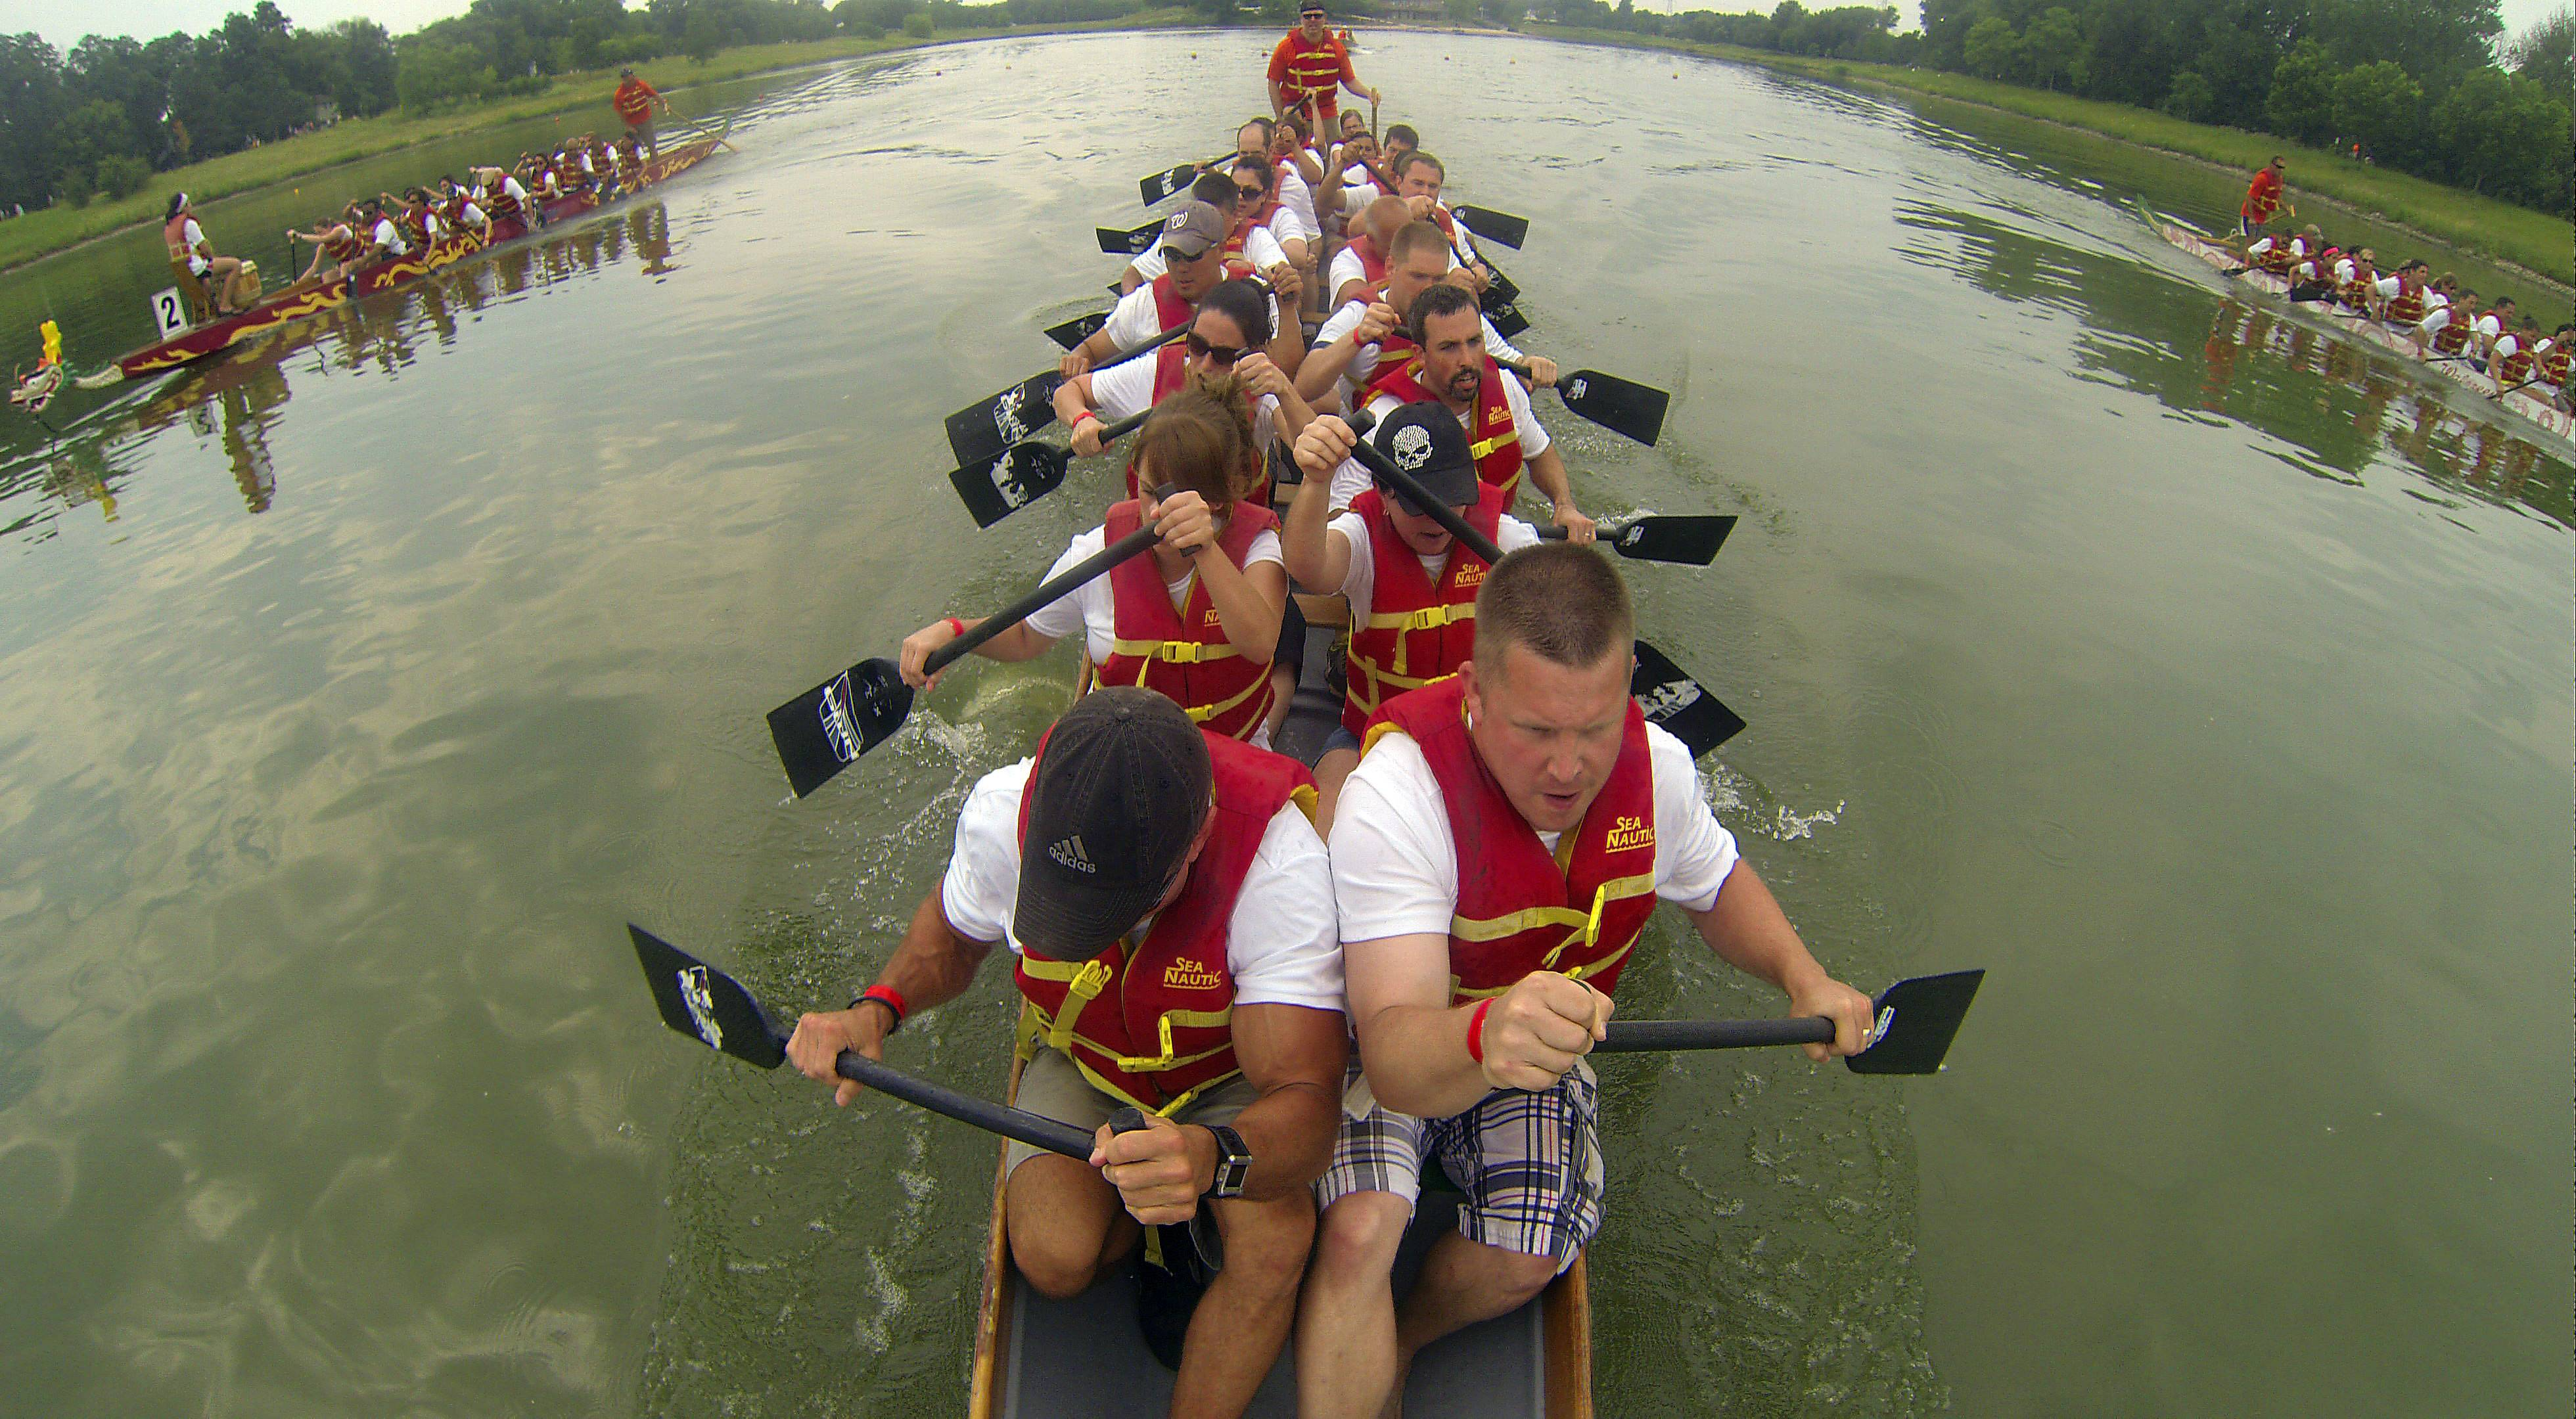 The Walgreens Dragon Boat team Pharma-Seas outrows other teams for a victory Saturday at the Walgreens Chicago International Dragon Boat Festival at Lake Arlington.